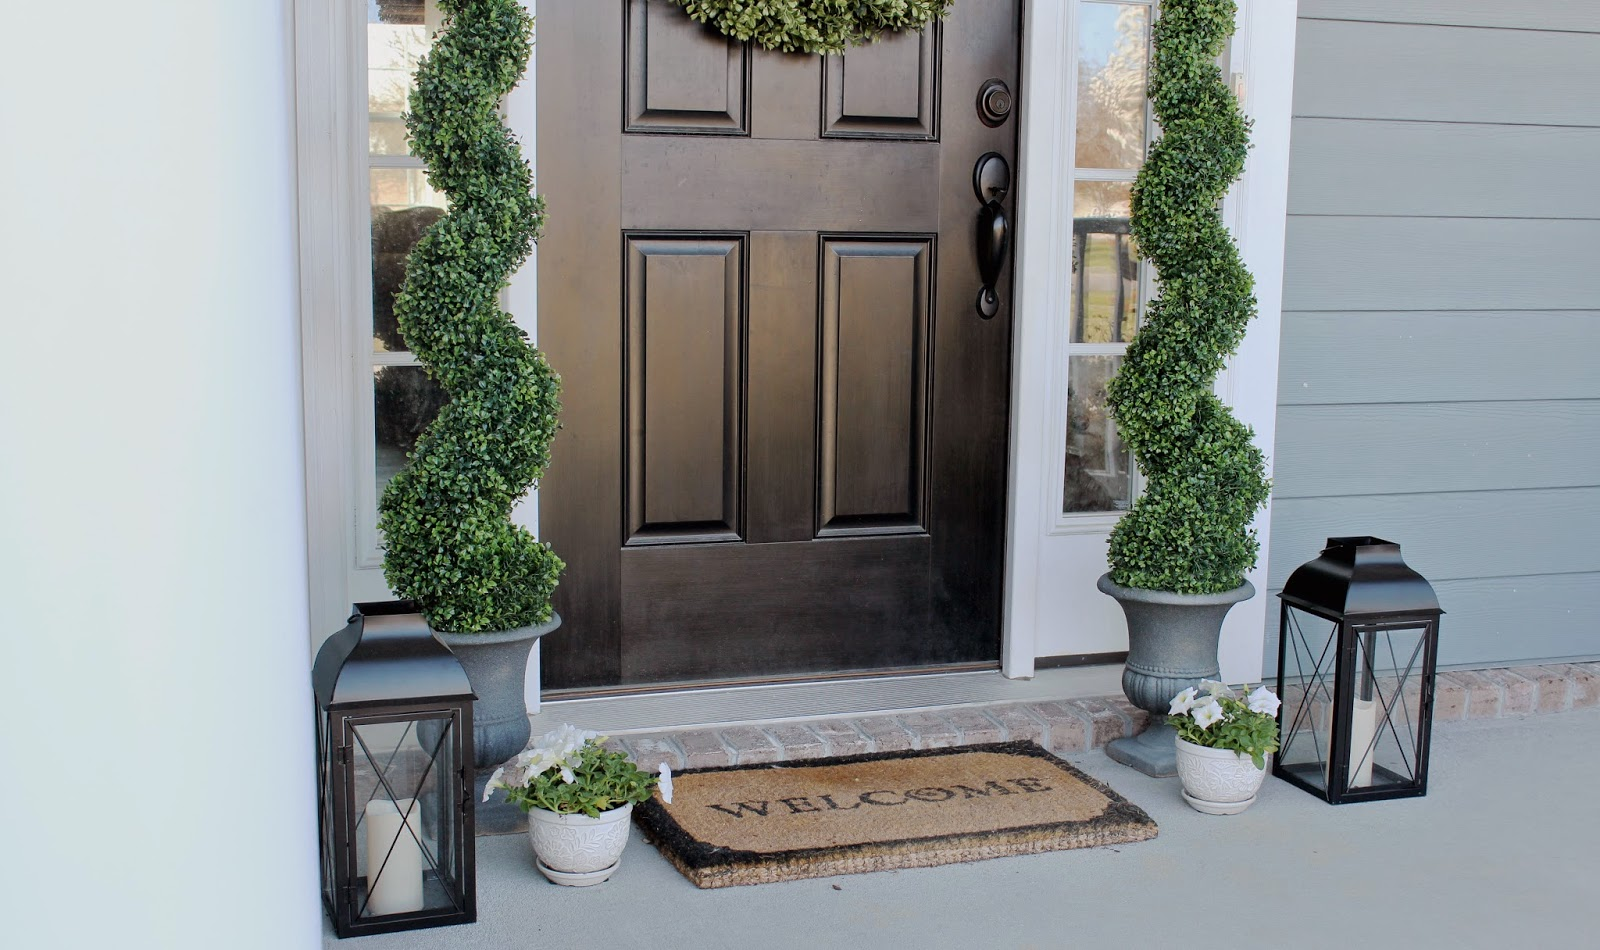 Topiaries, Front Porch Decorations, White Rockers, Boxwood Wreath